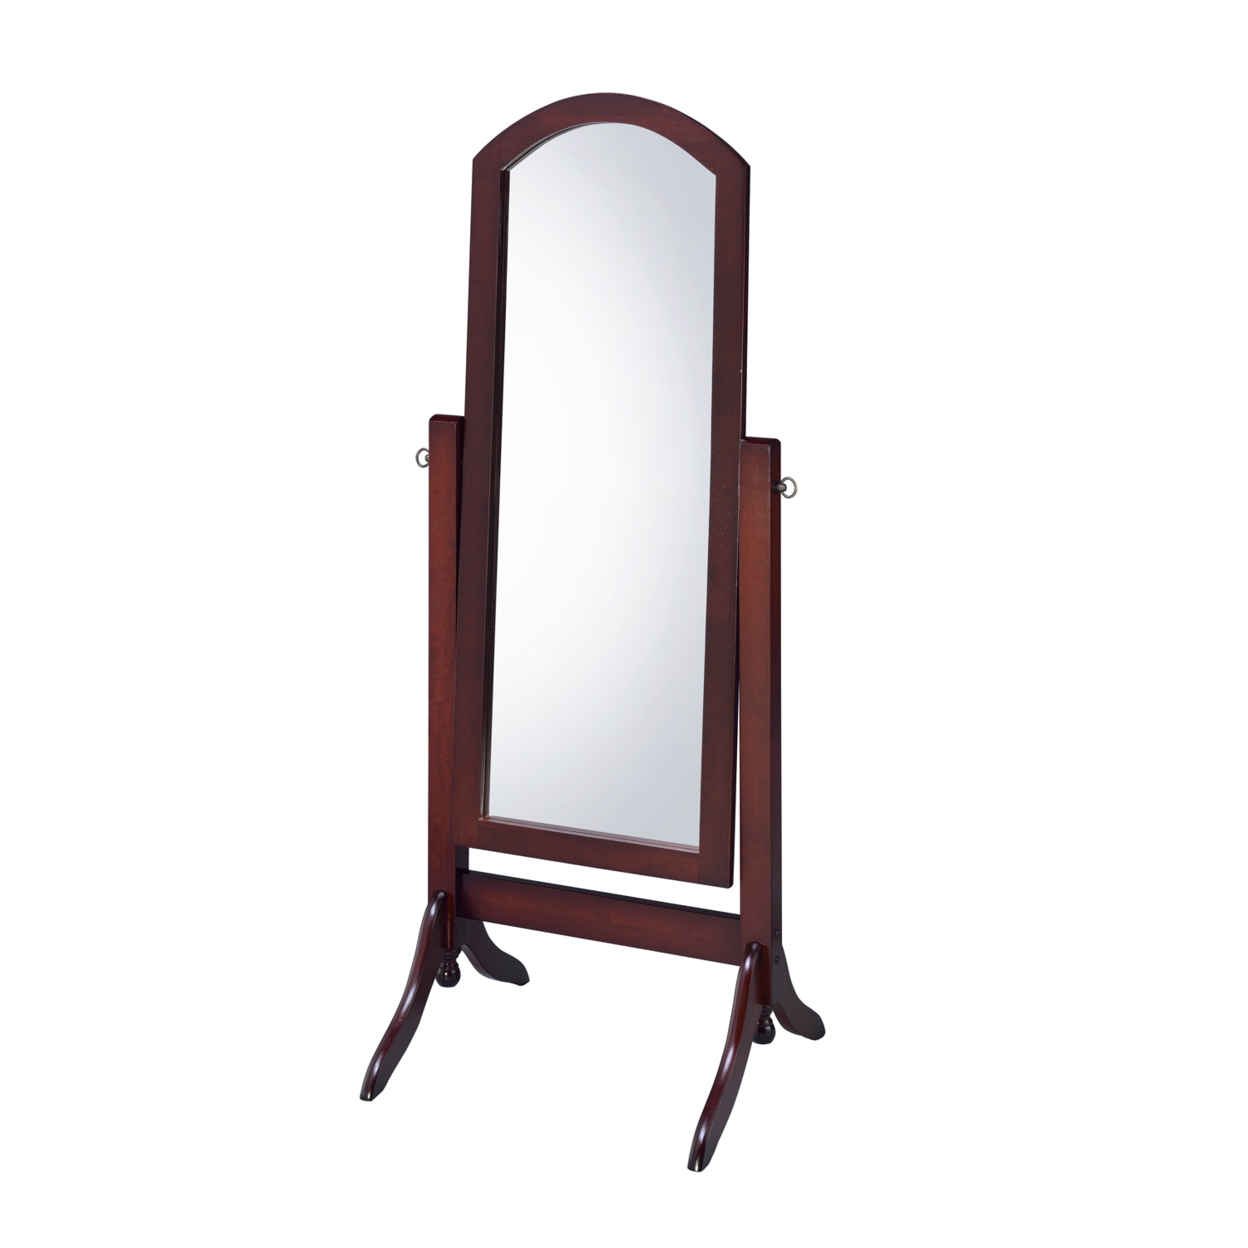 Proman Salon Buy Bedroom Floor Mirror Decor And Get Free Shipping On Aliexpress